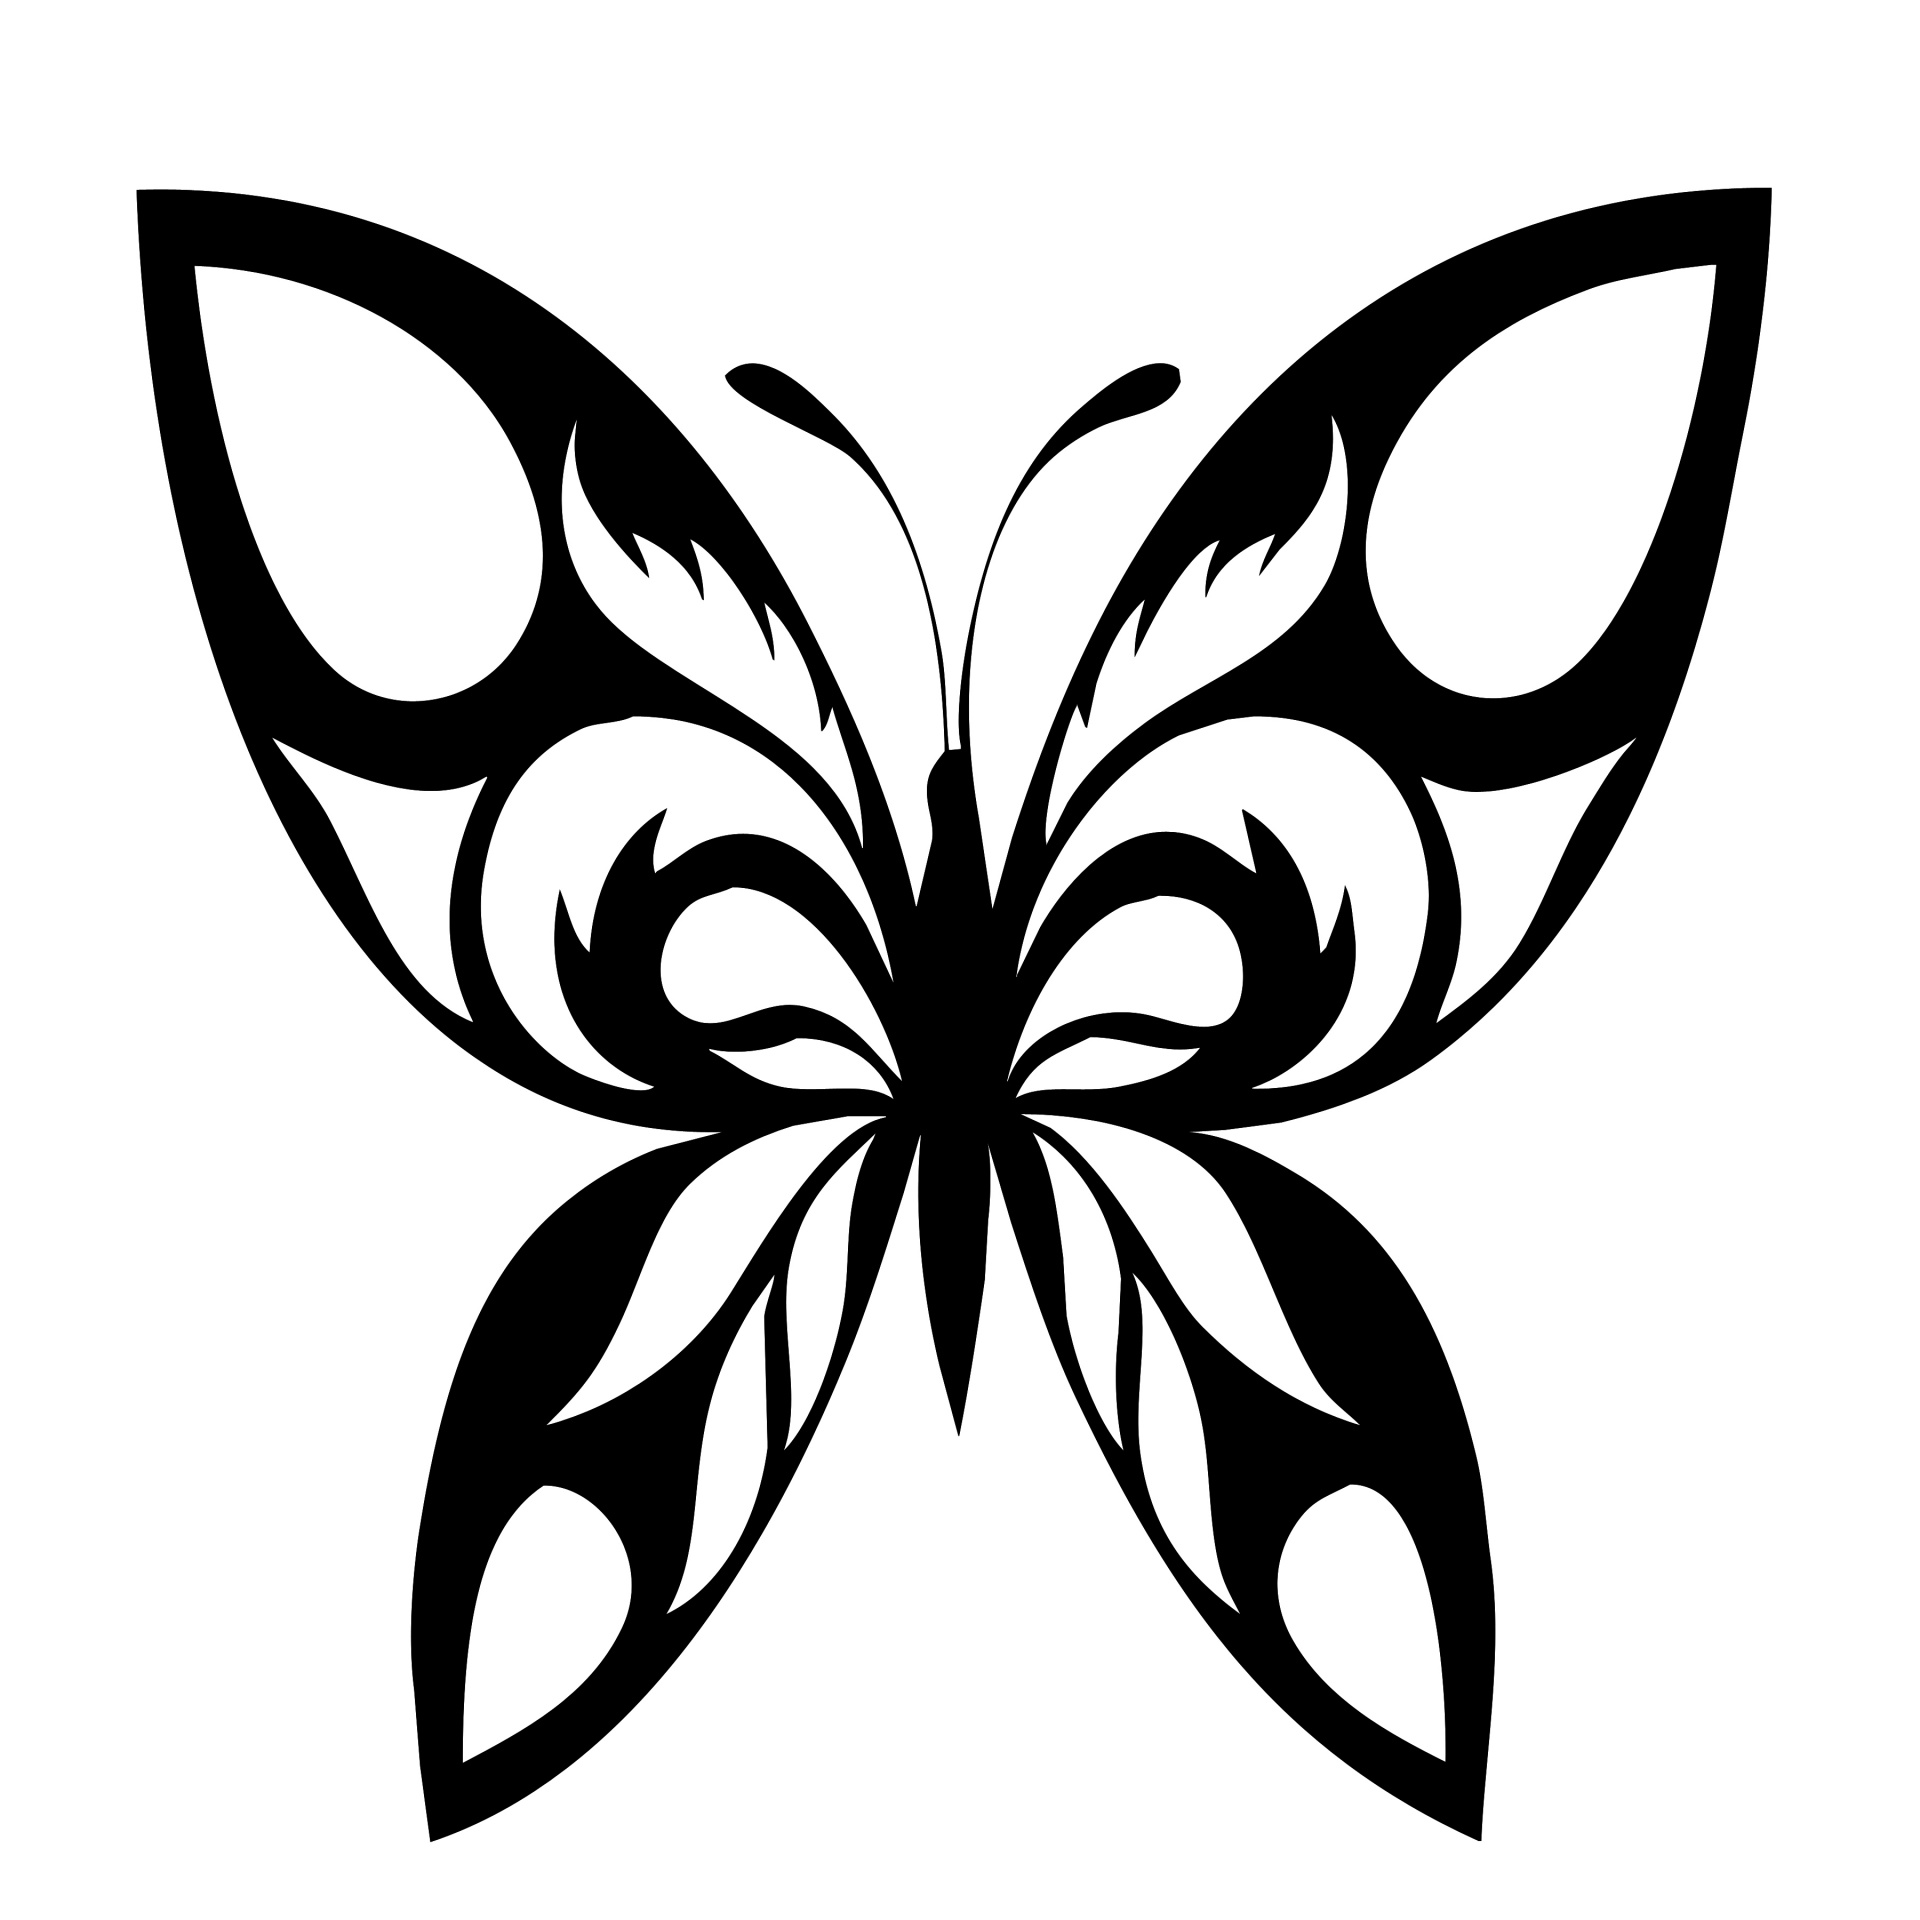 1920x1920 Butterfly Silhouette Black Motif Free Stock Photo